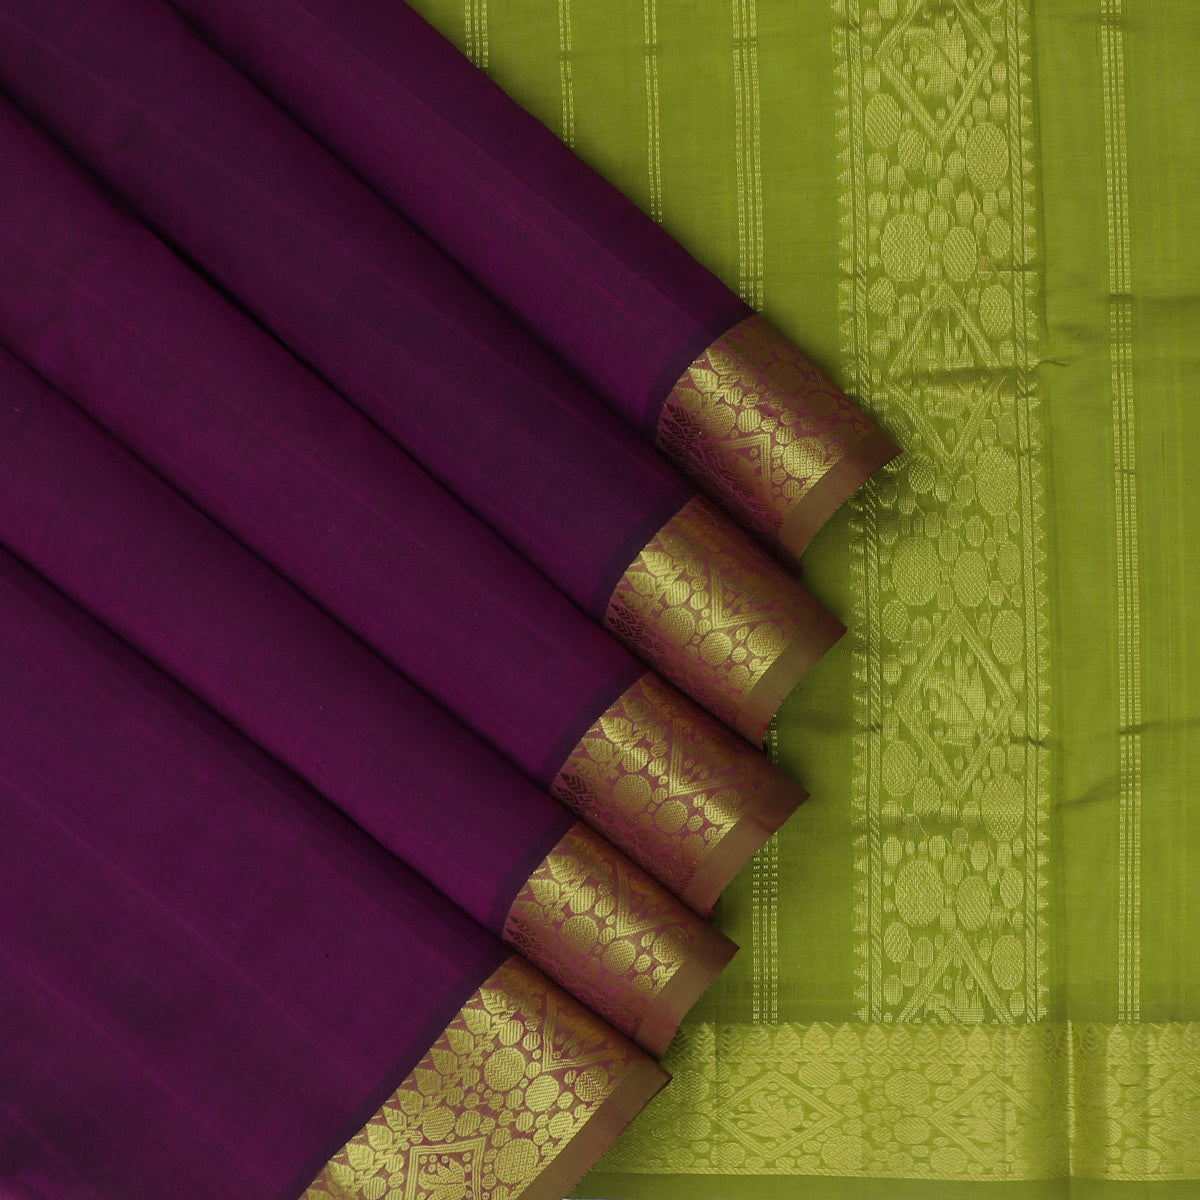 Silk Cotton Saree-Violet and Mehandi Green with Buds zari border